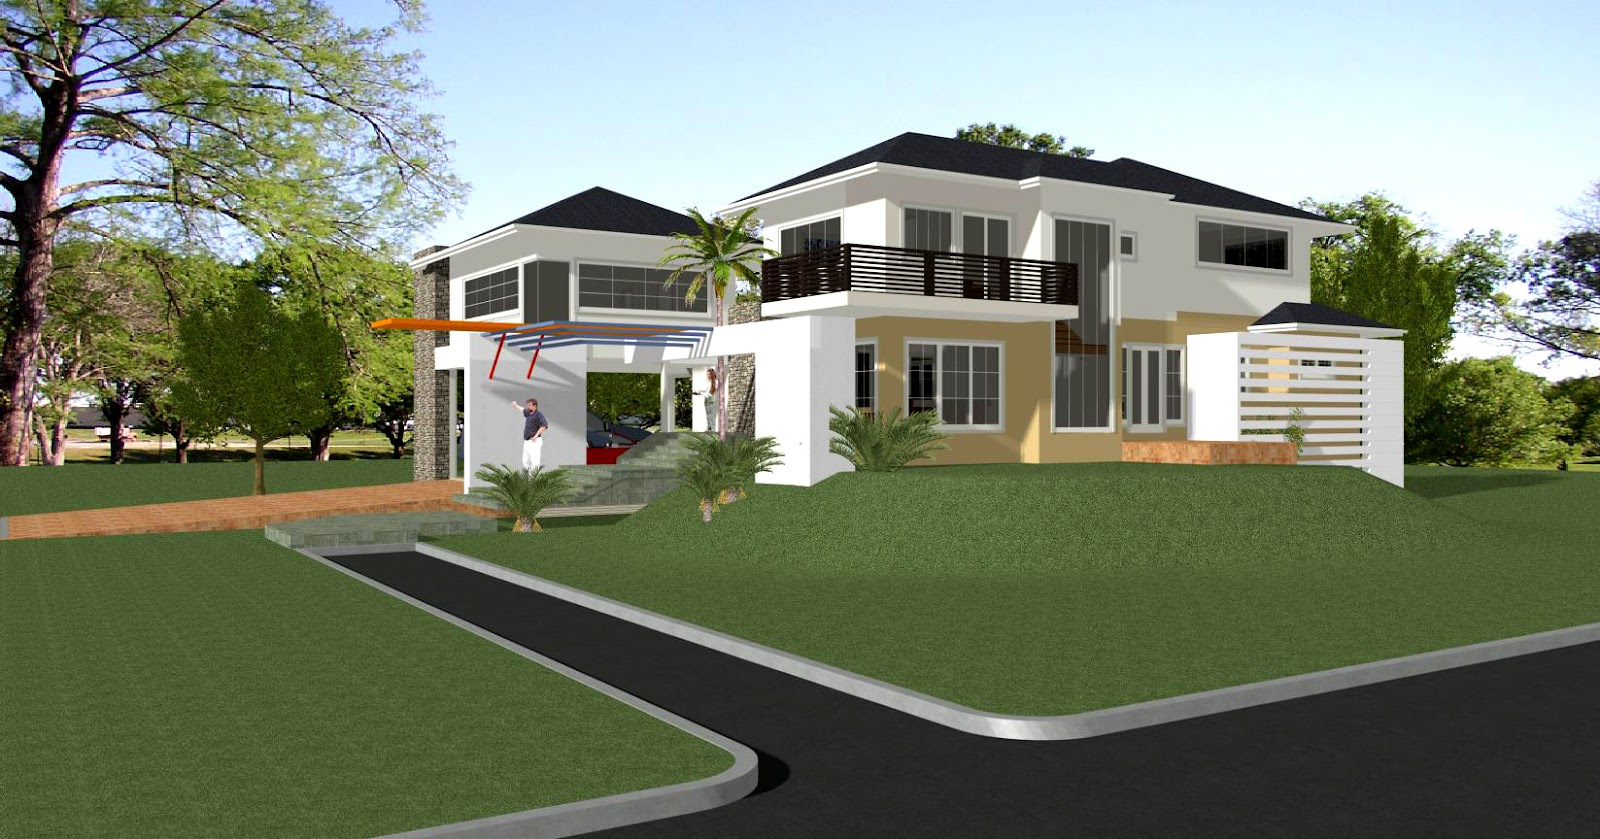 Dream home designs erecre group realty design and for Dream home design